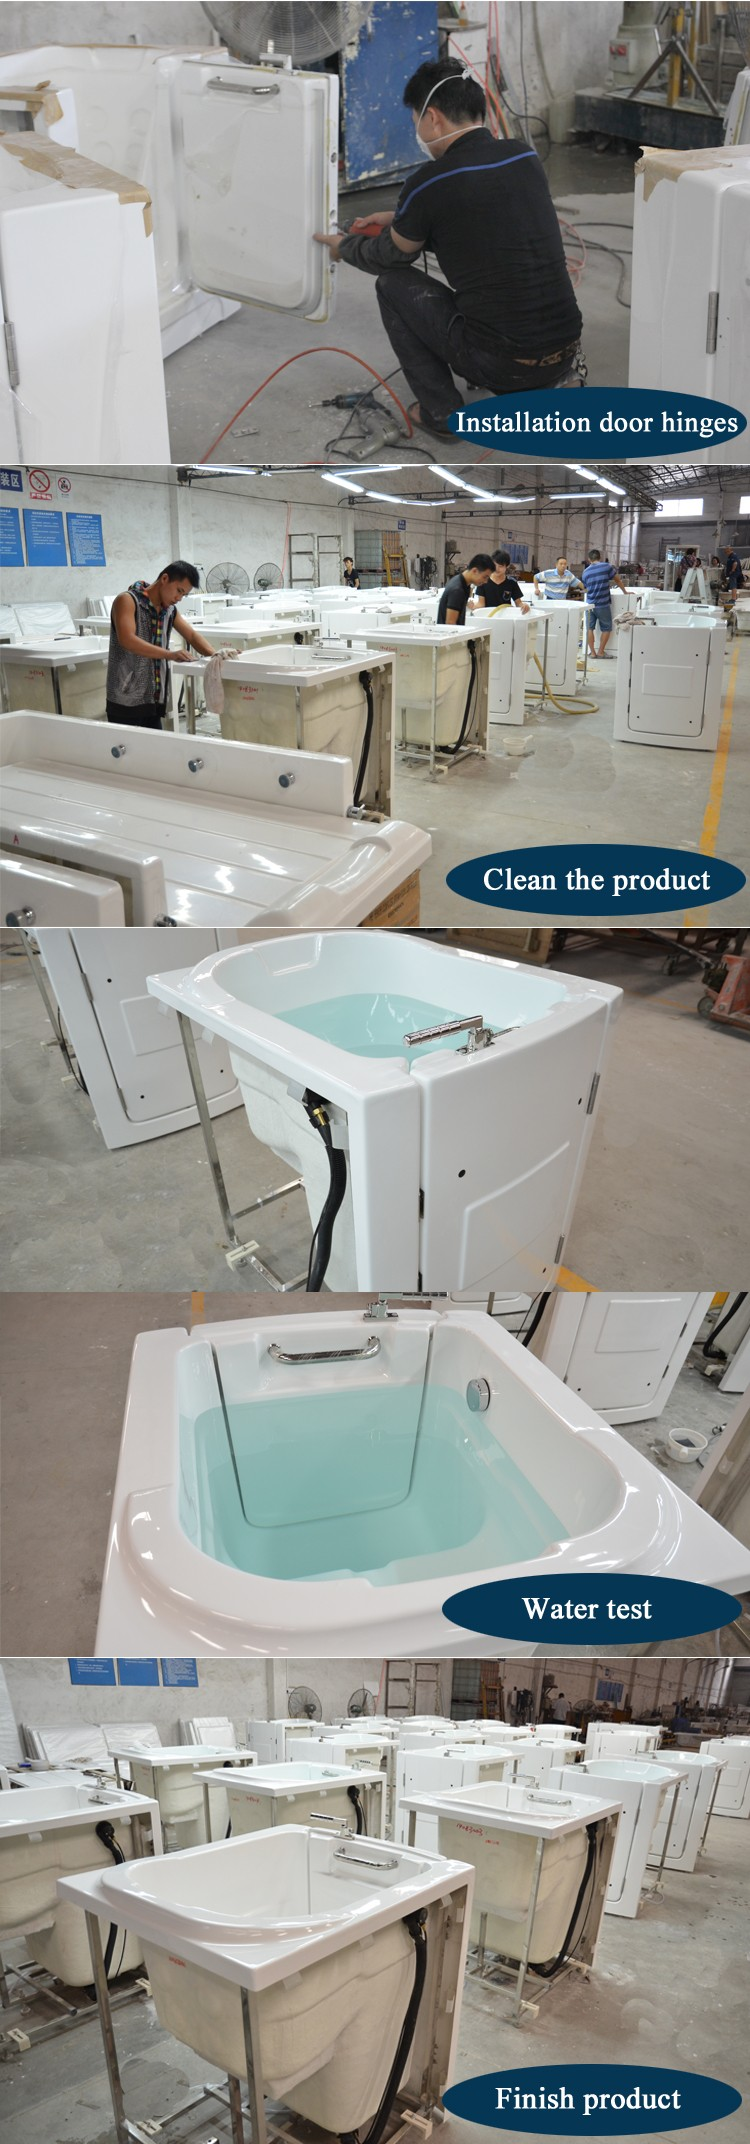 Hs-b1102 Bathtub For Elderly,Walk In Bathtub,Walk In Tub Shower ...